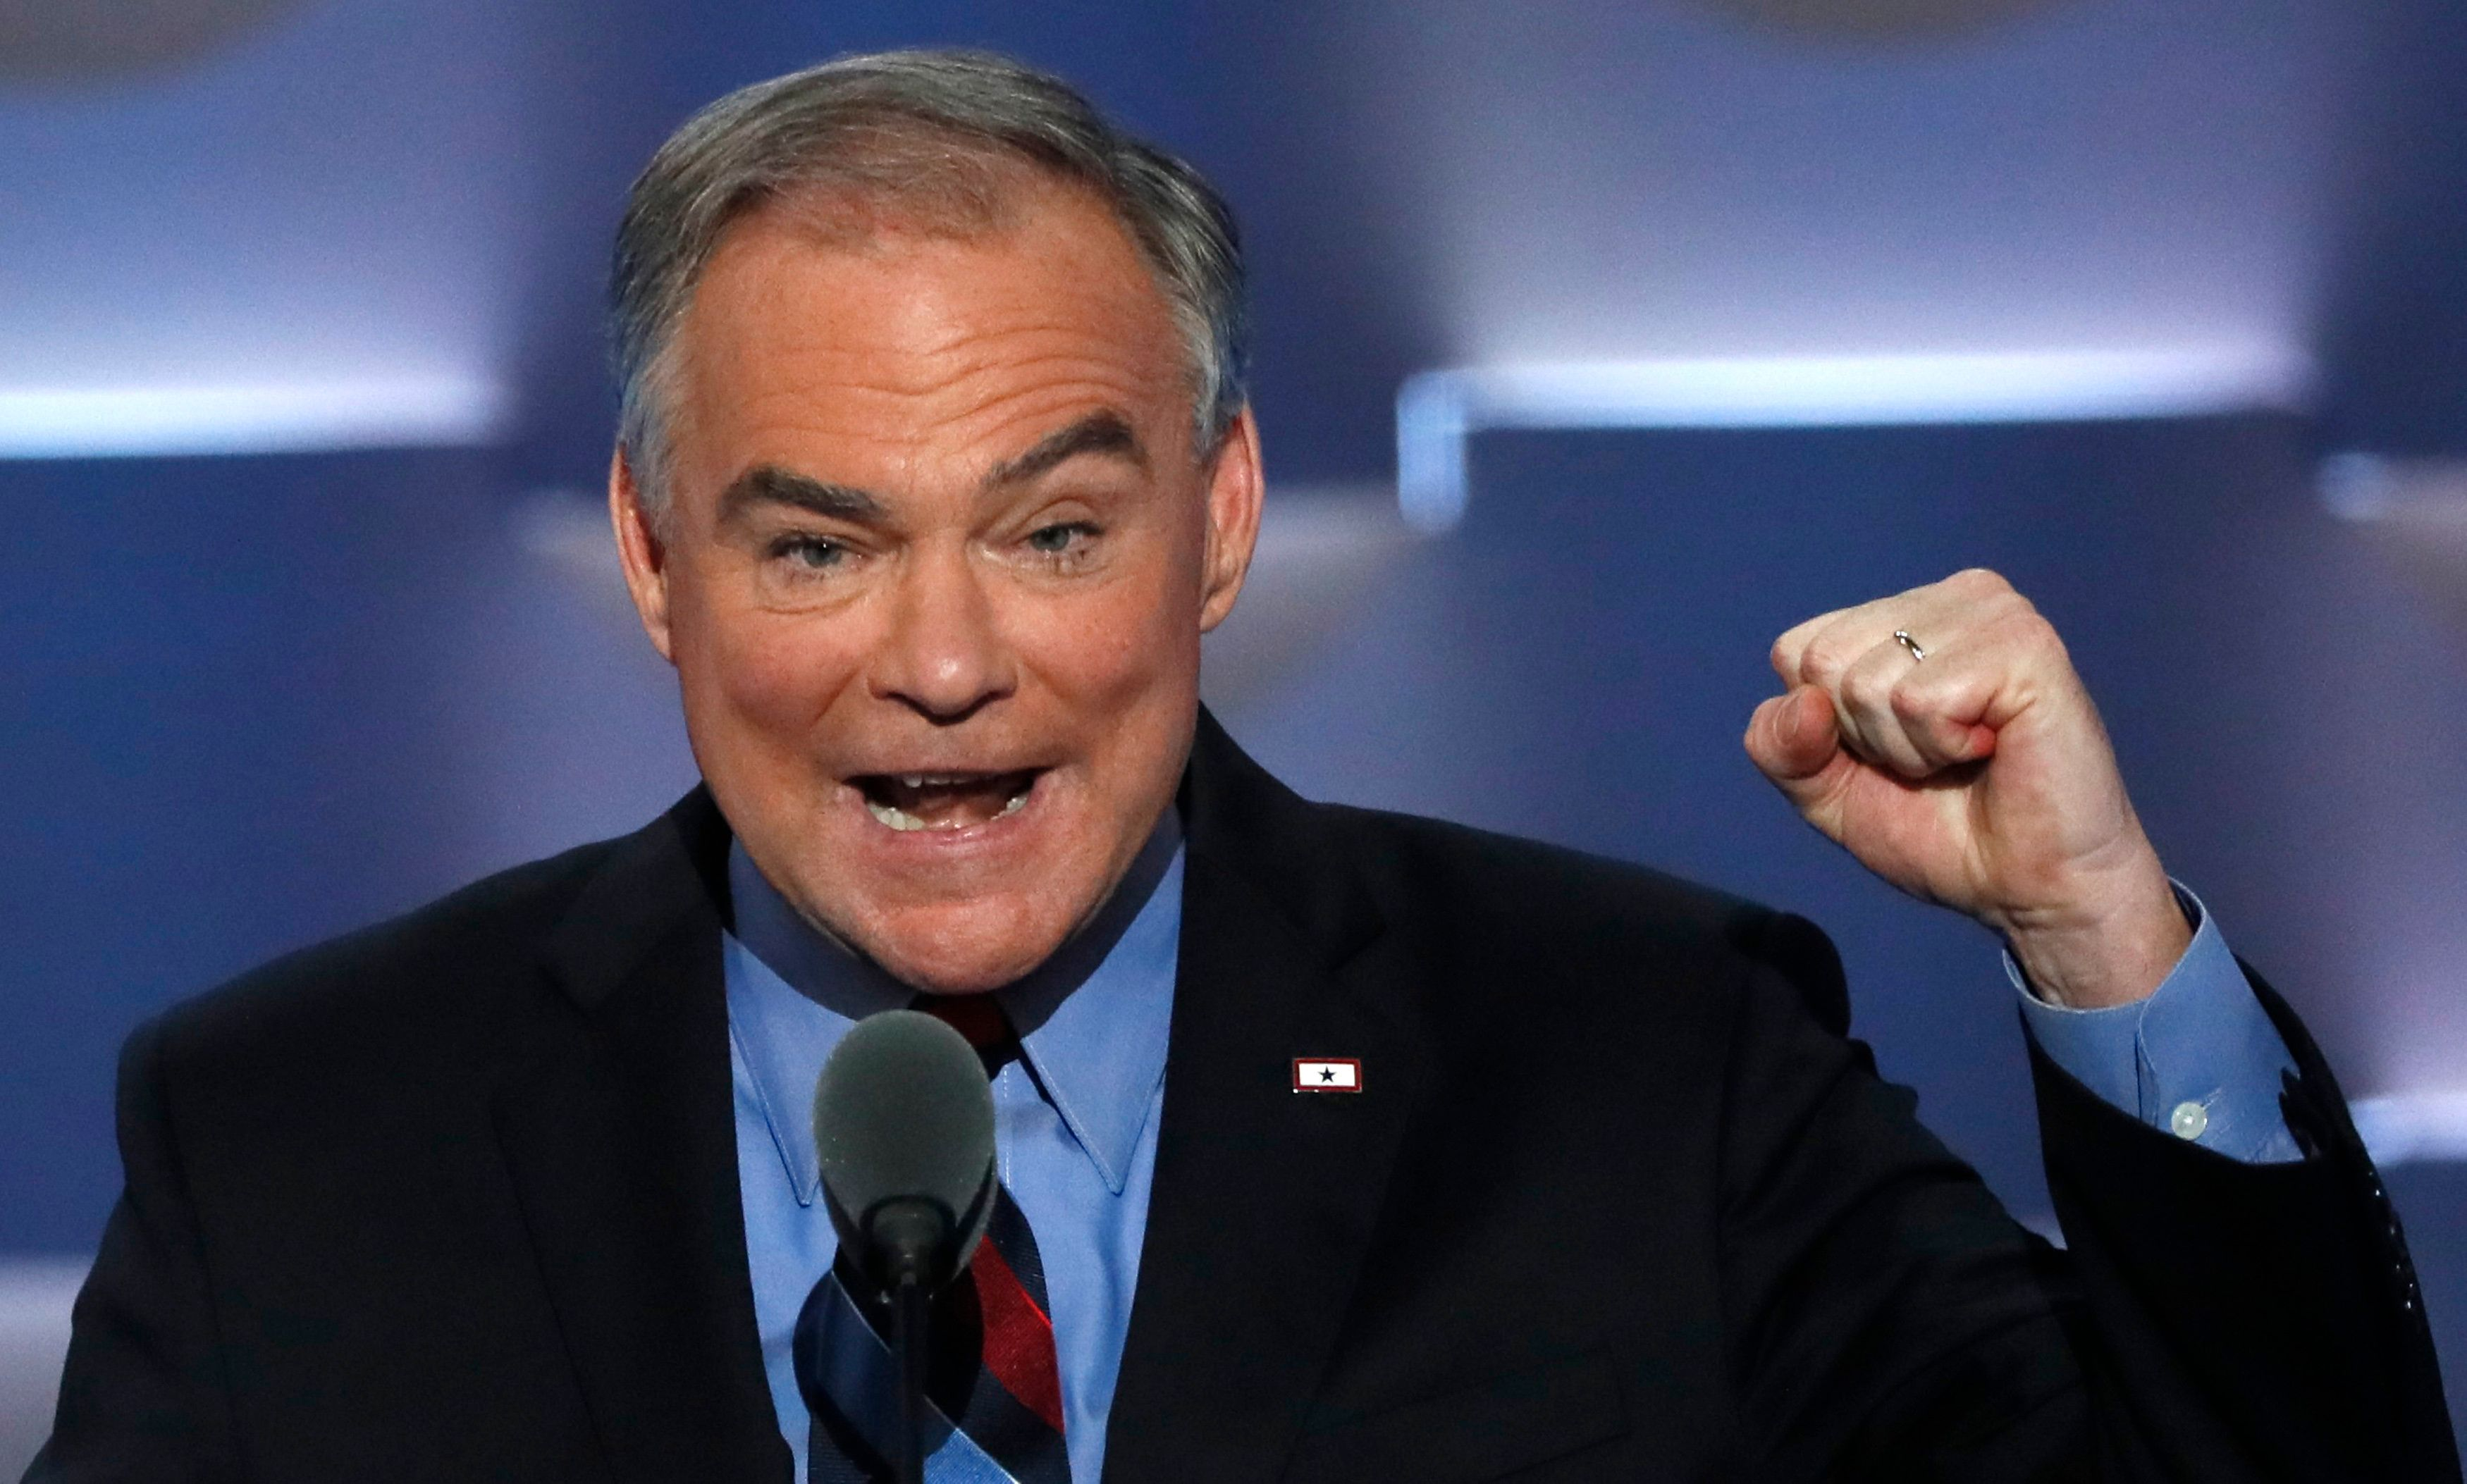 Kaine speaking on the third night at the Democratic National Convention on July 27, 2016.